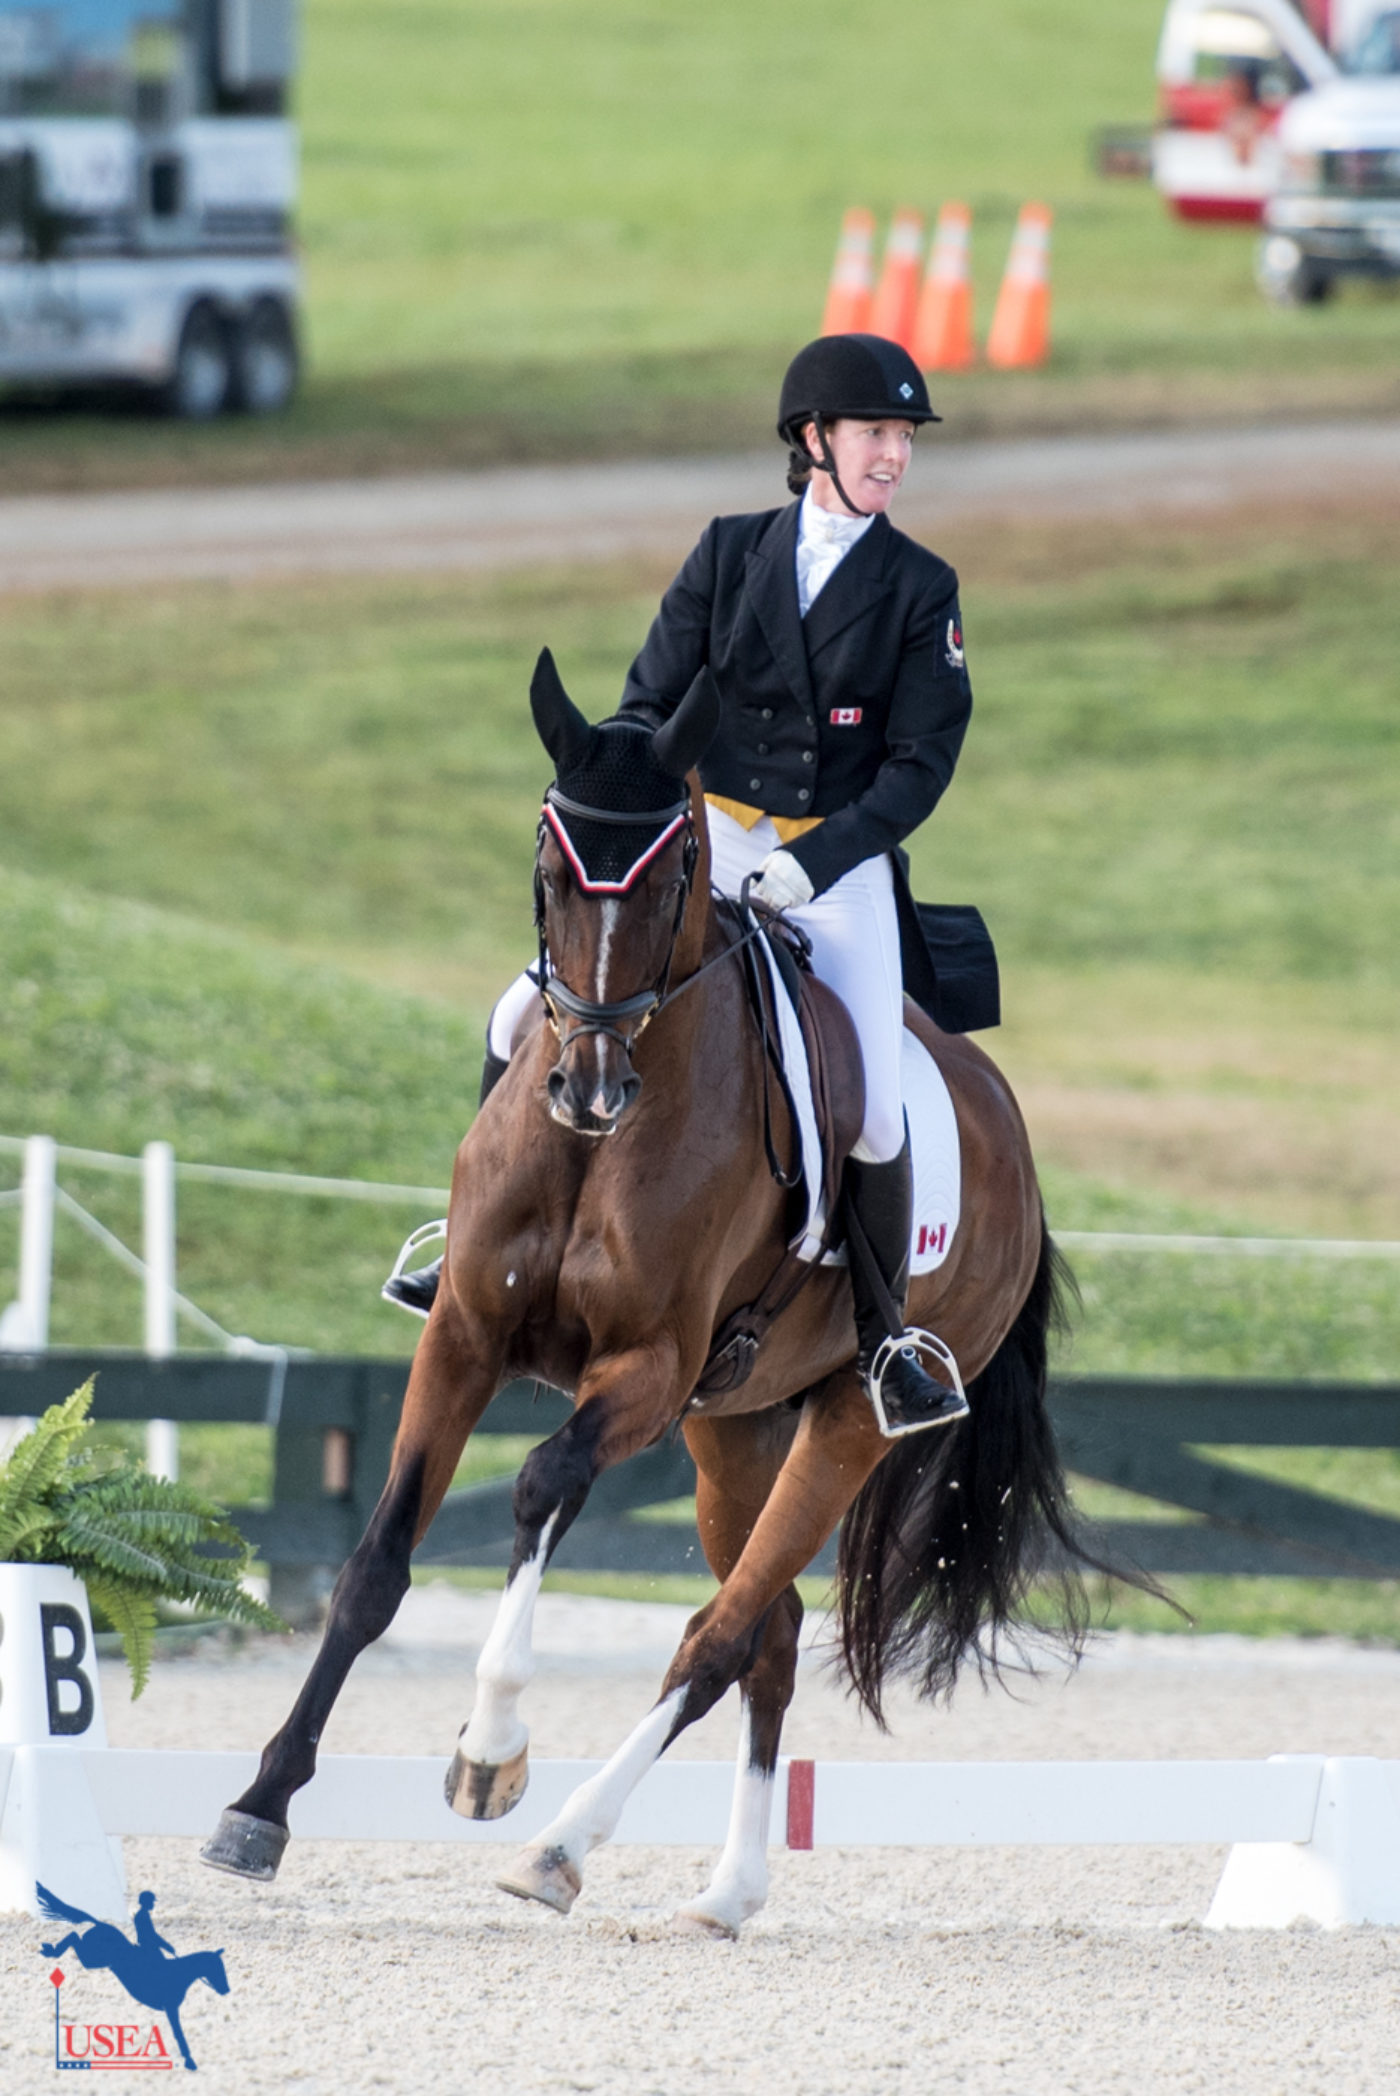 5th - Selena O'Hanlon and Foxwood High (CAN) - 46.9